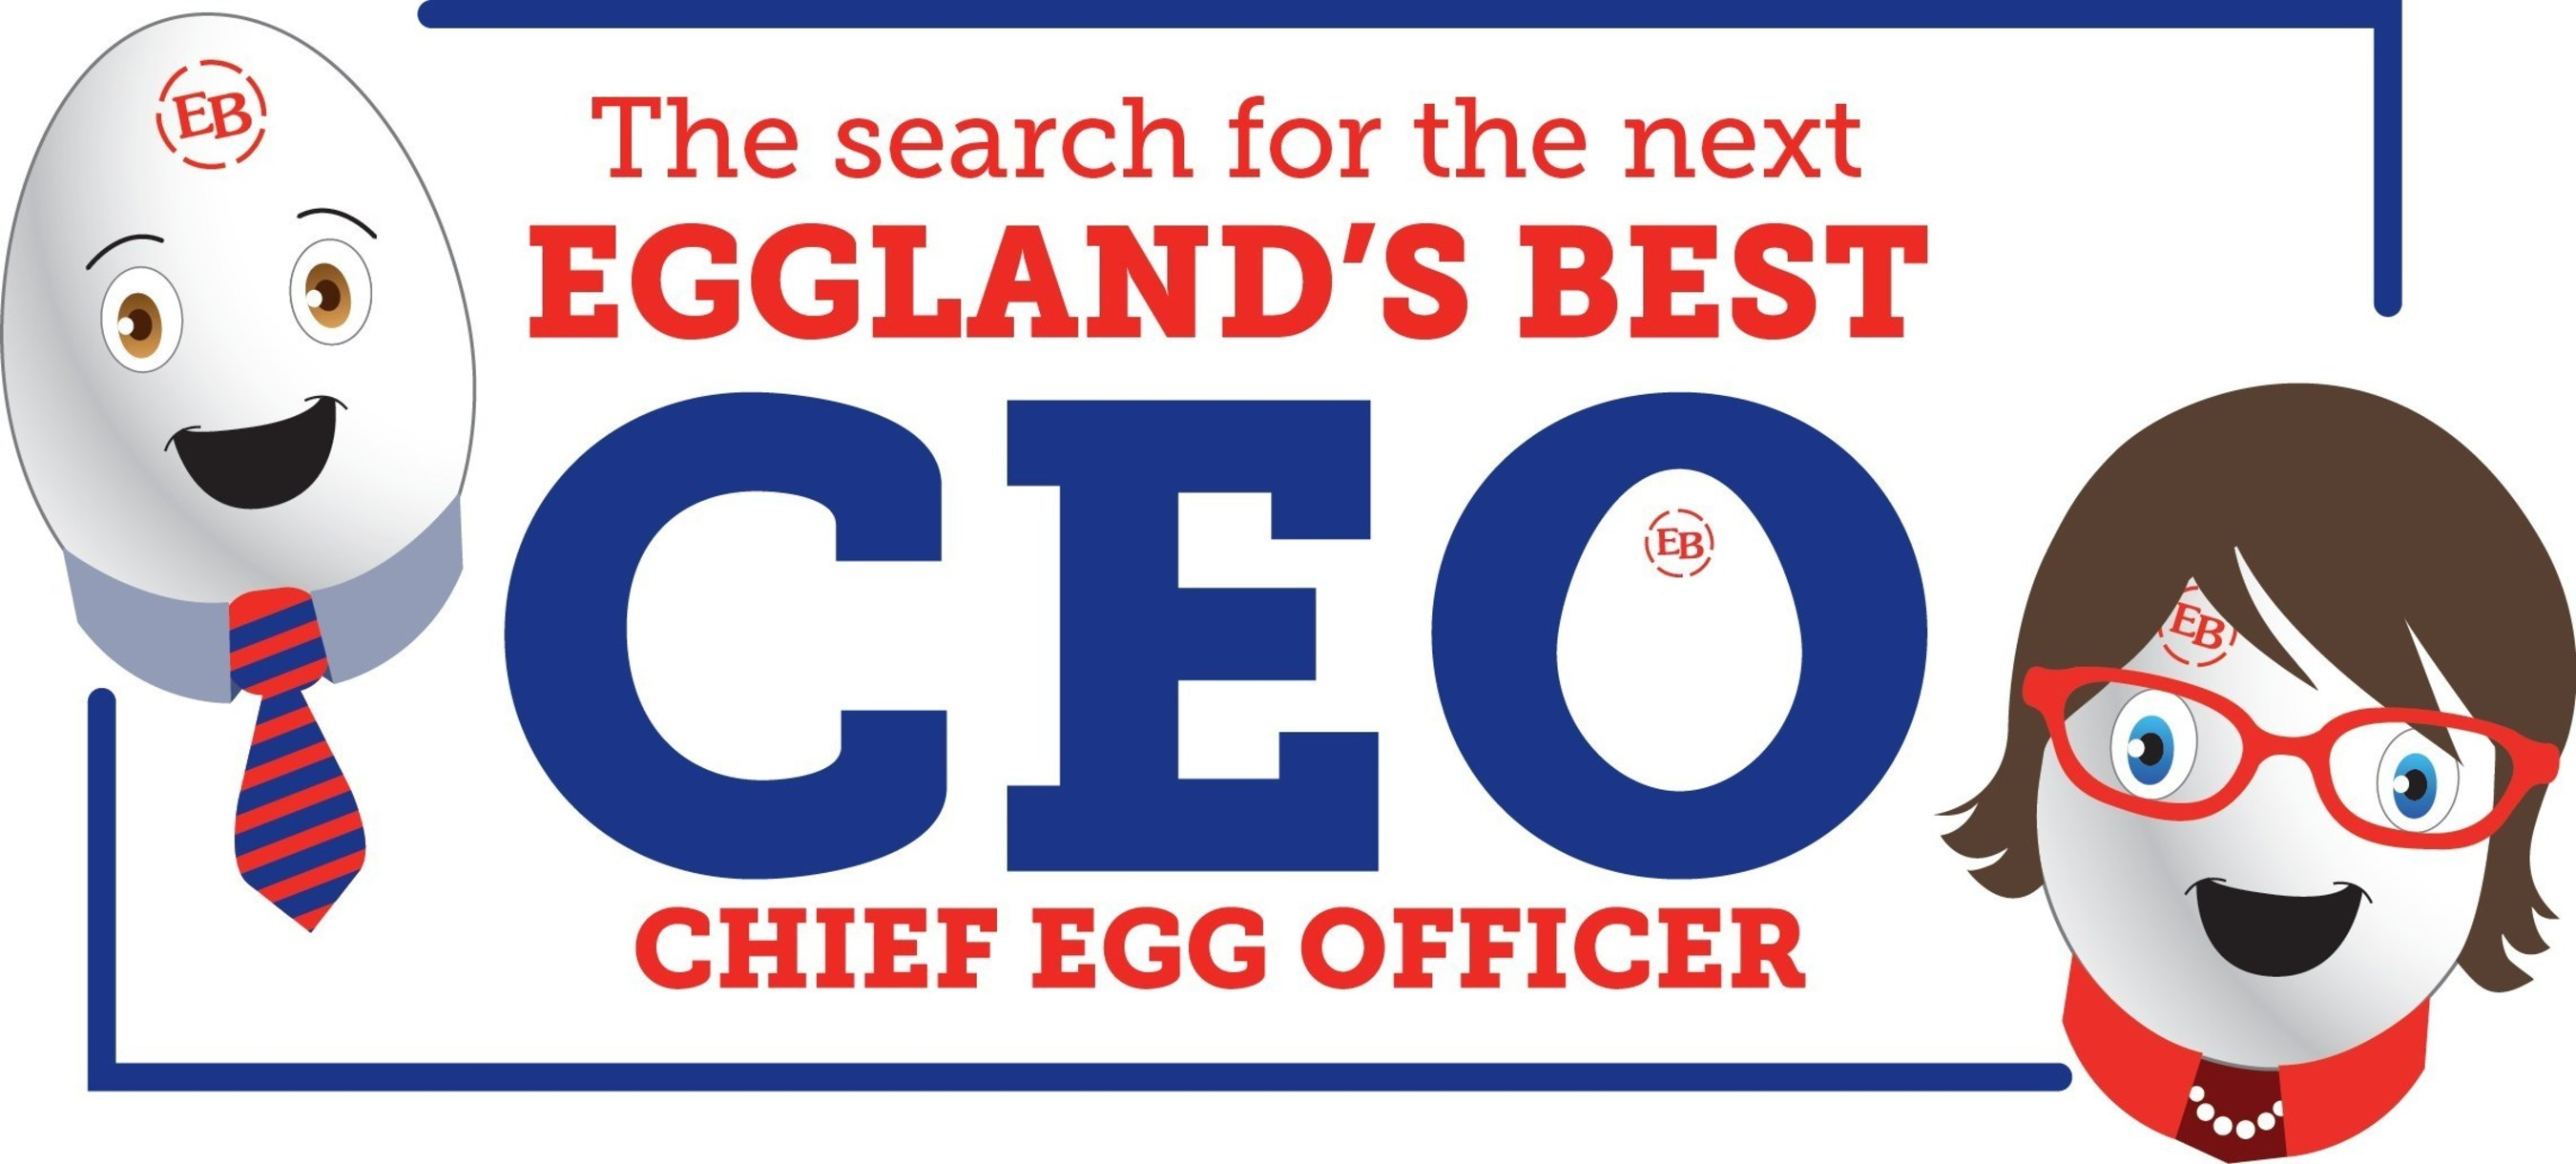 There's Still Time to Enter Eggland's Best's CEO ('Chief Egg Officer') Contest